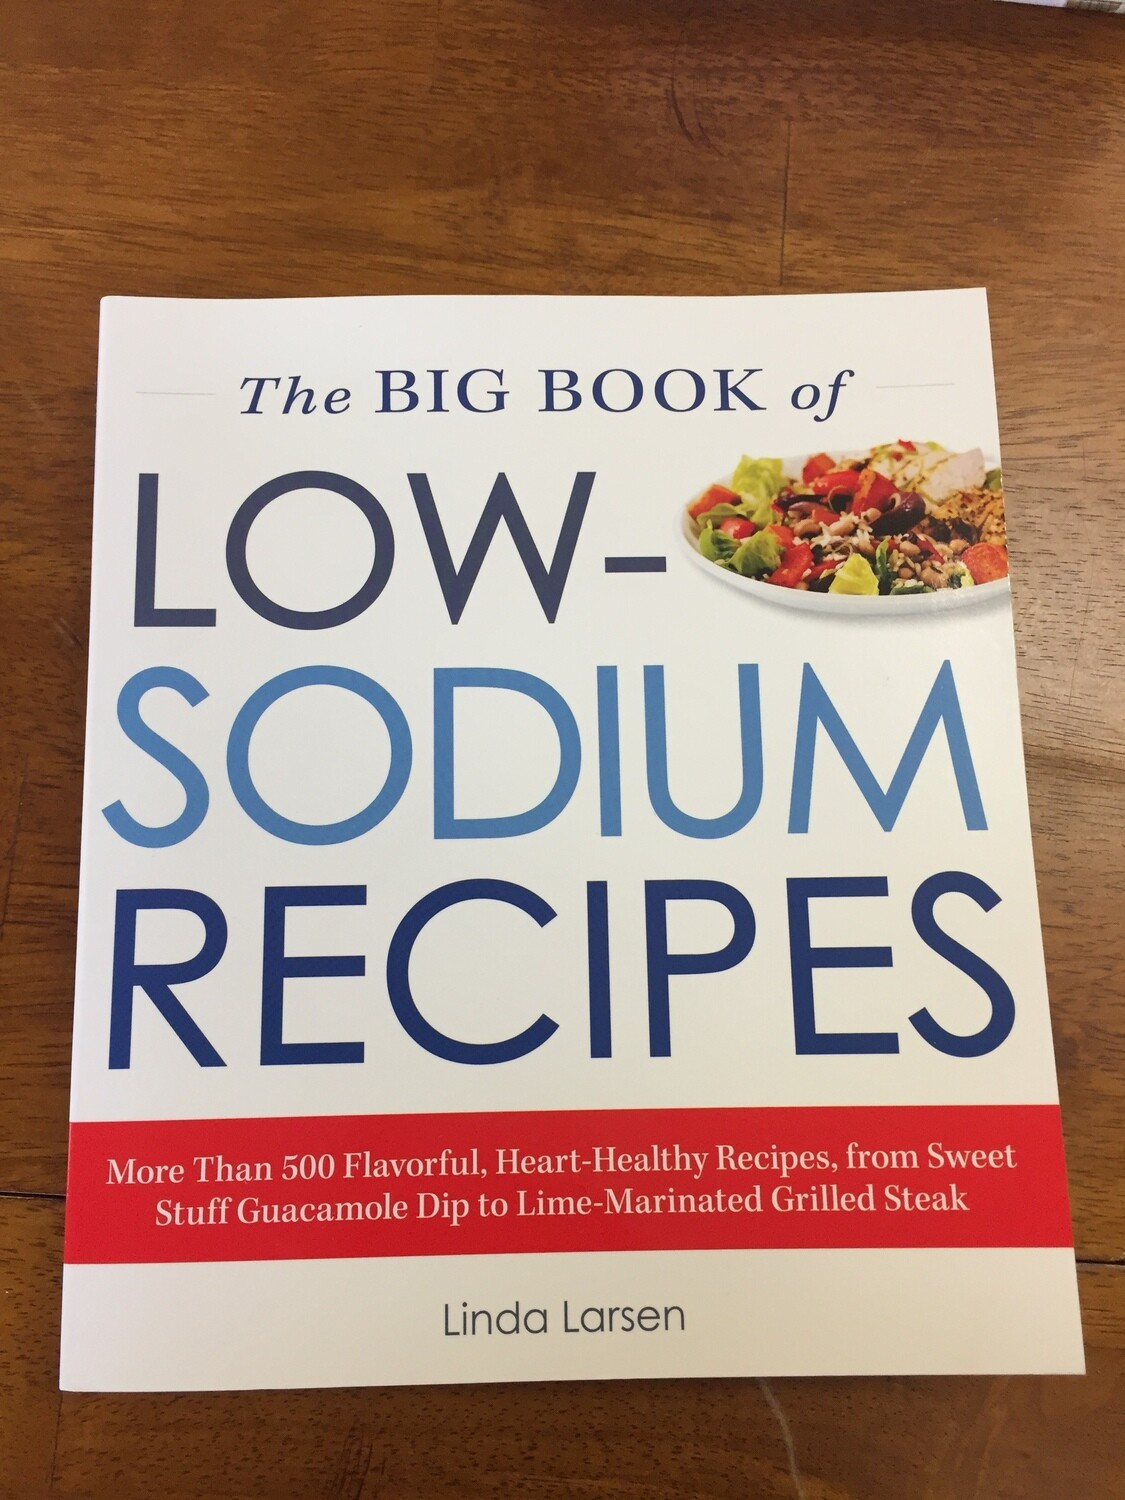 The Big Book of Low Sodium Recipes